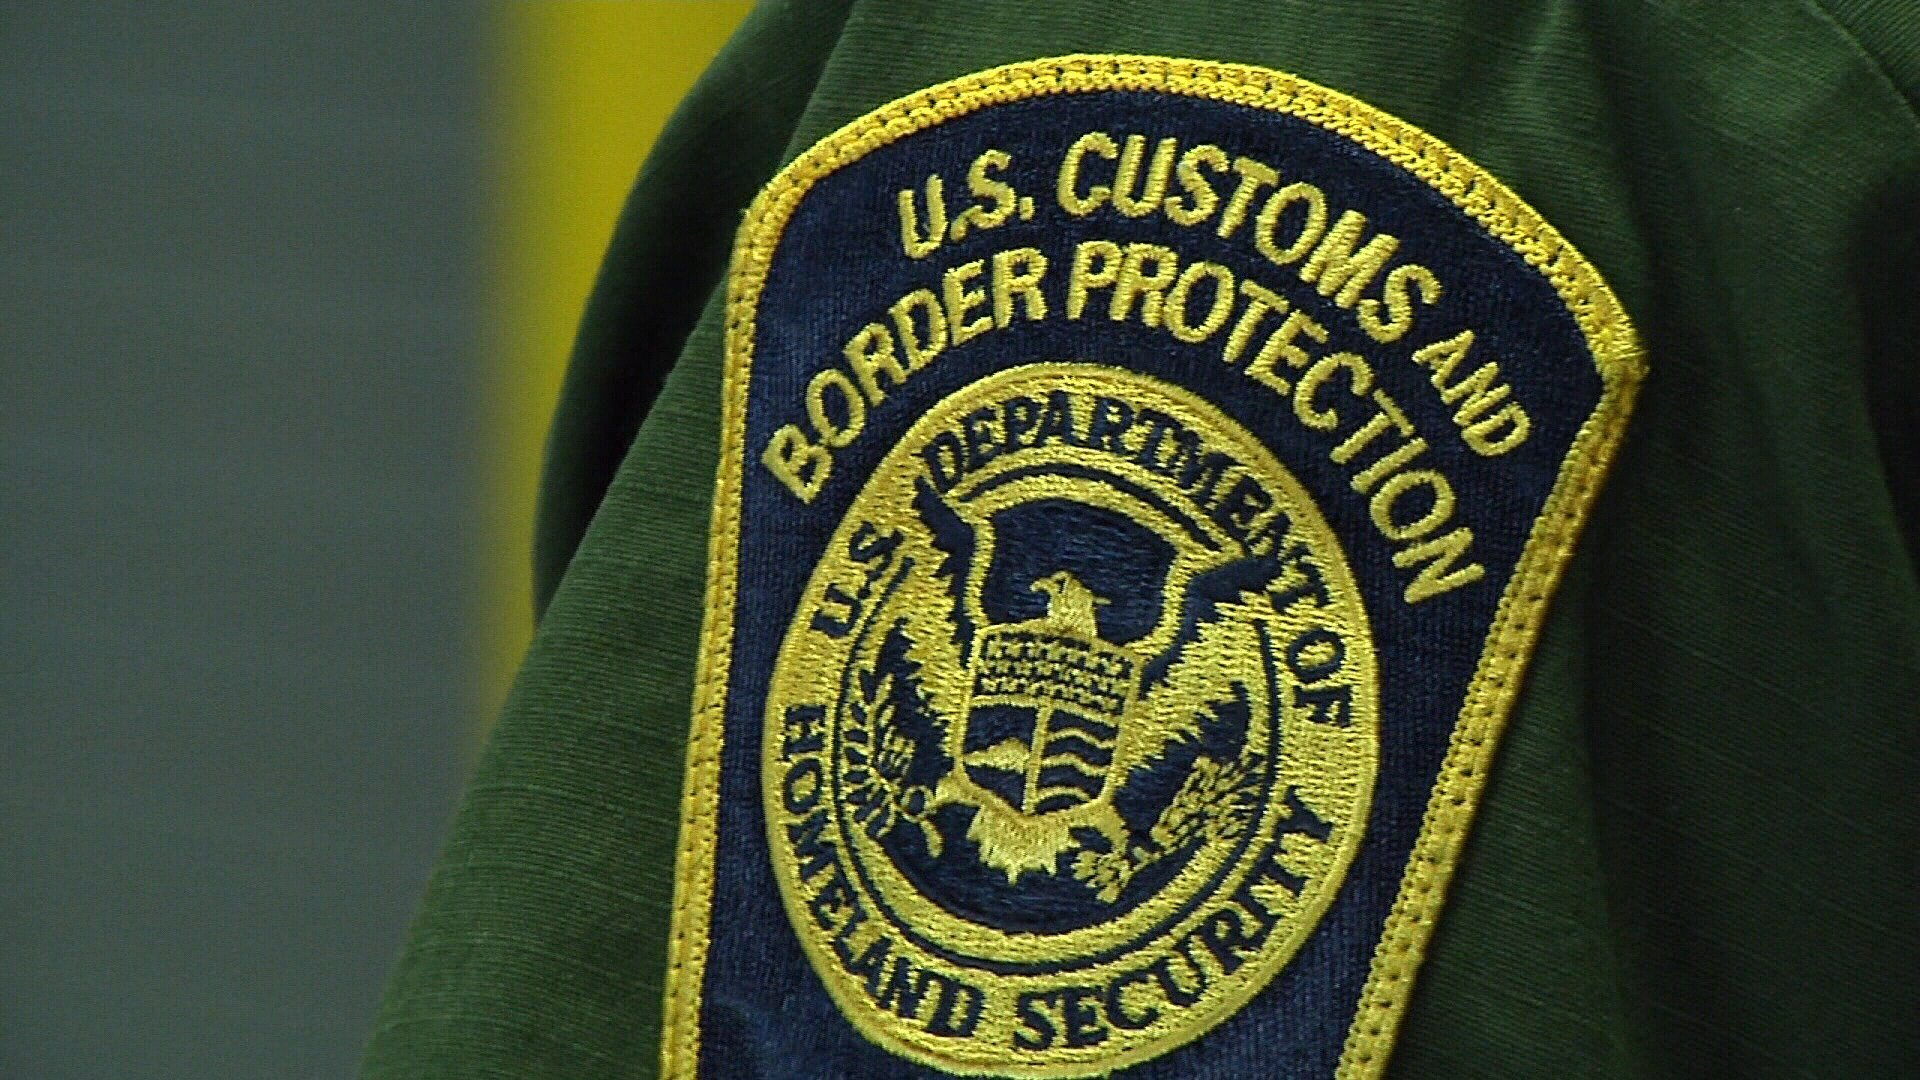 File: U.S. Border Patrol patch